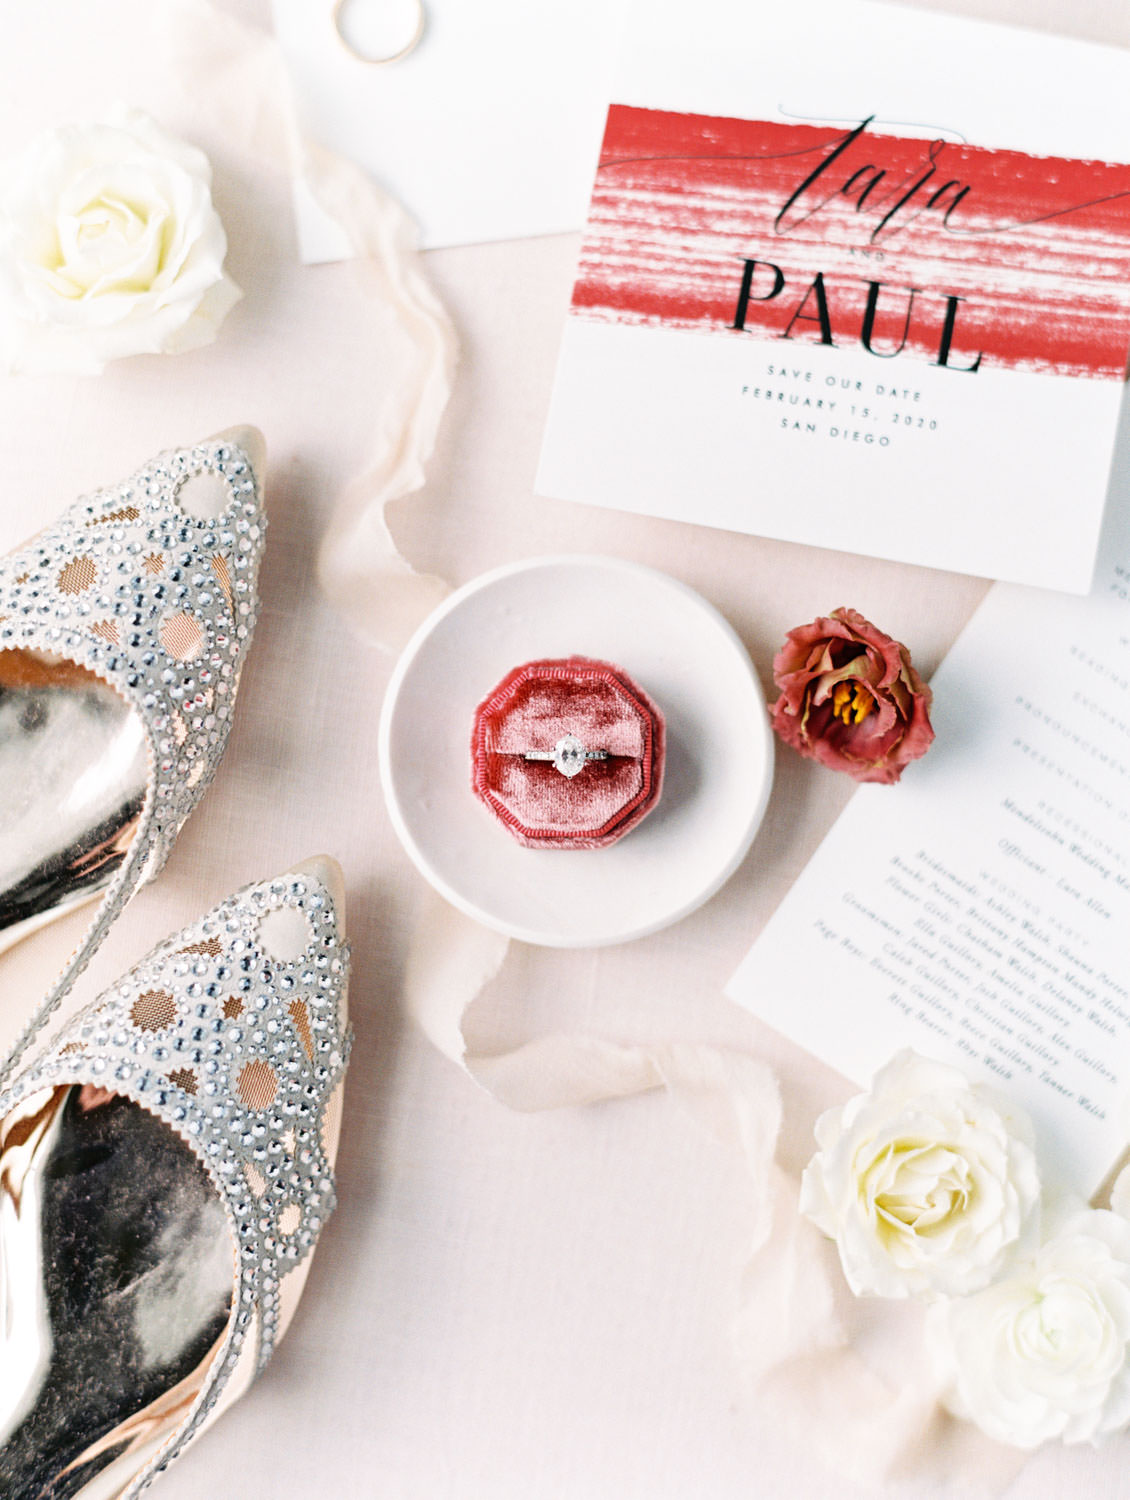 Modern wedding invitation with burgundy brush stroke styled with ring in velvet octagon ring box, earrings, and Badgley Mischka flats.